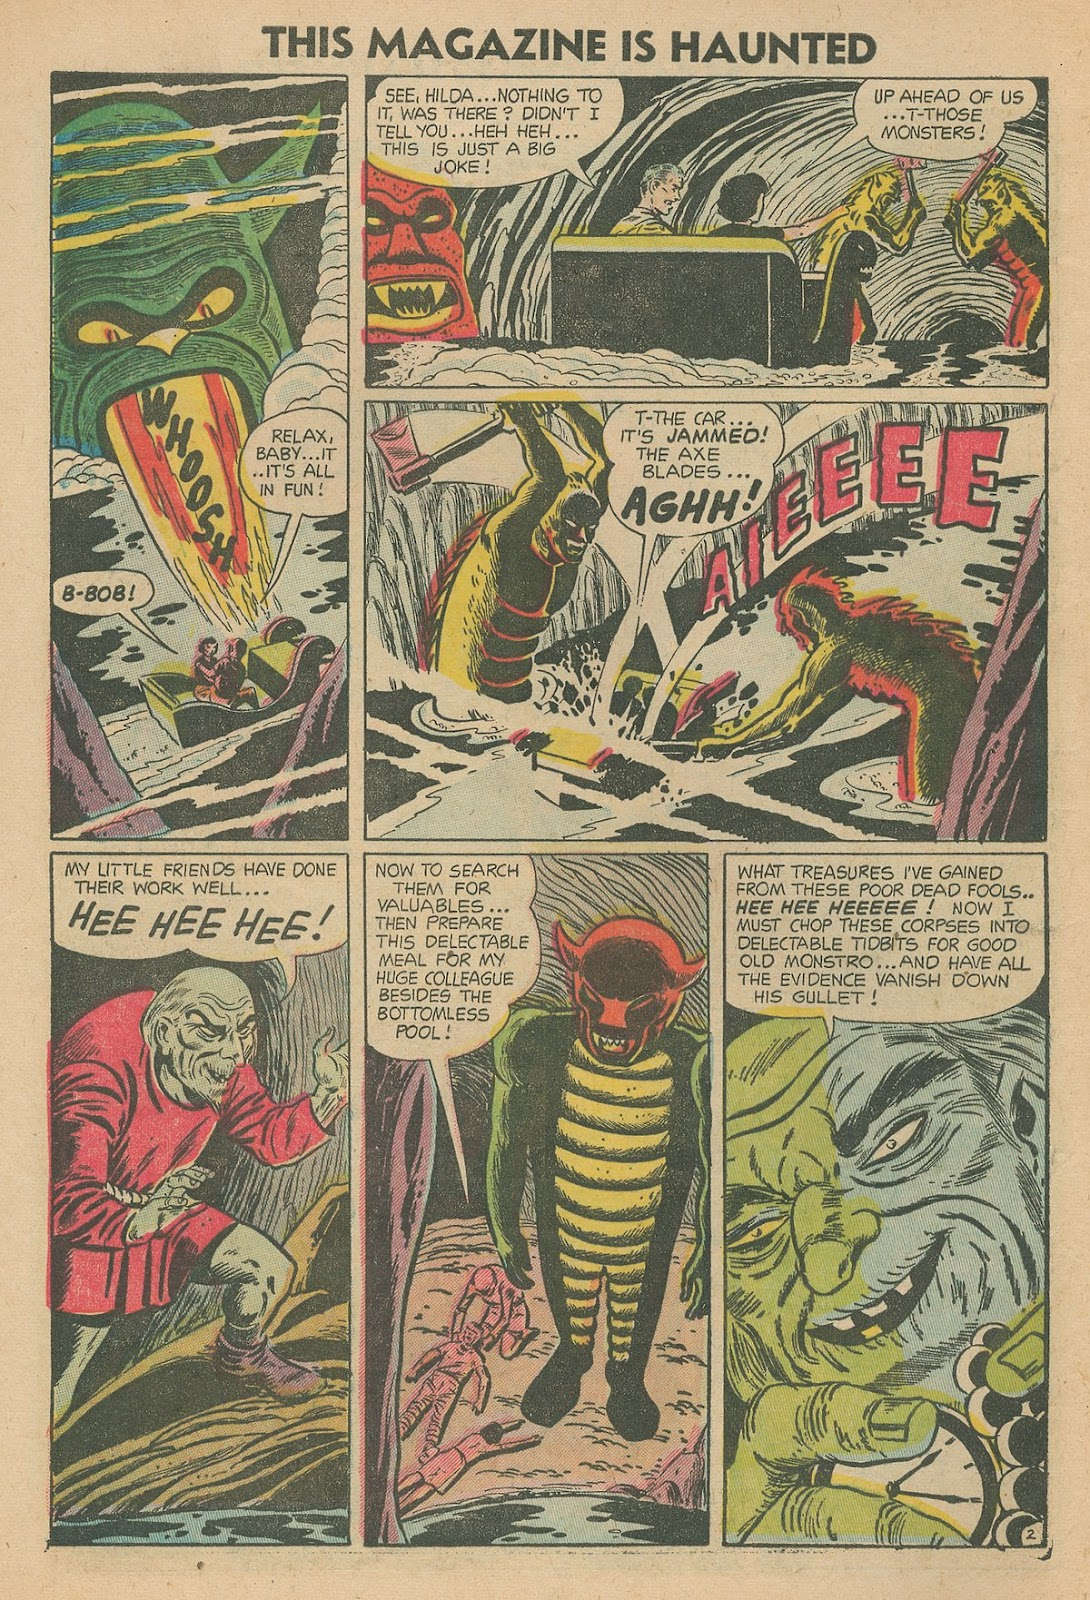 Read online This Magazine Is Haunted comic -  Issue #21 - 8